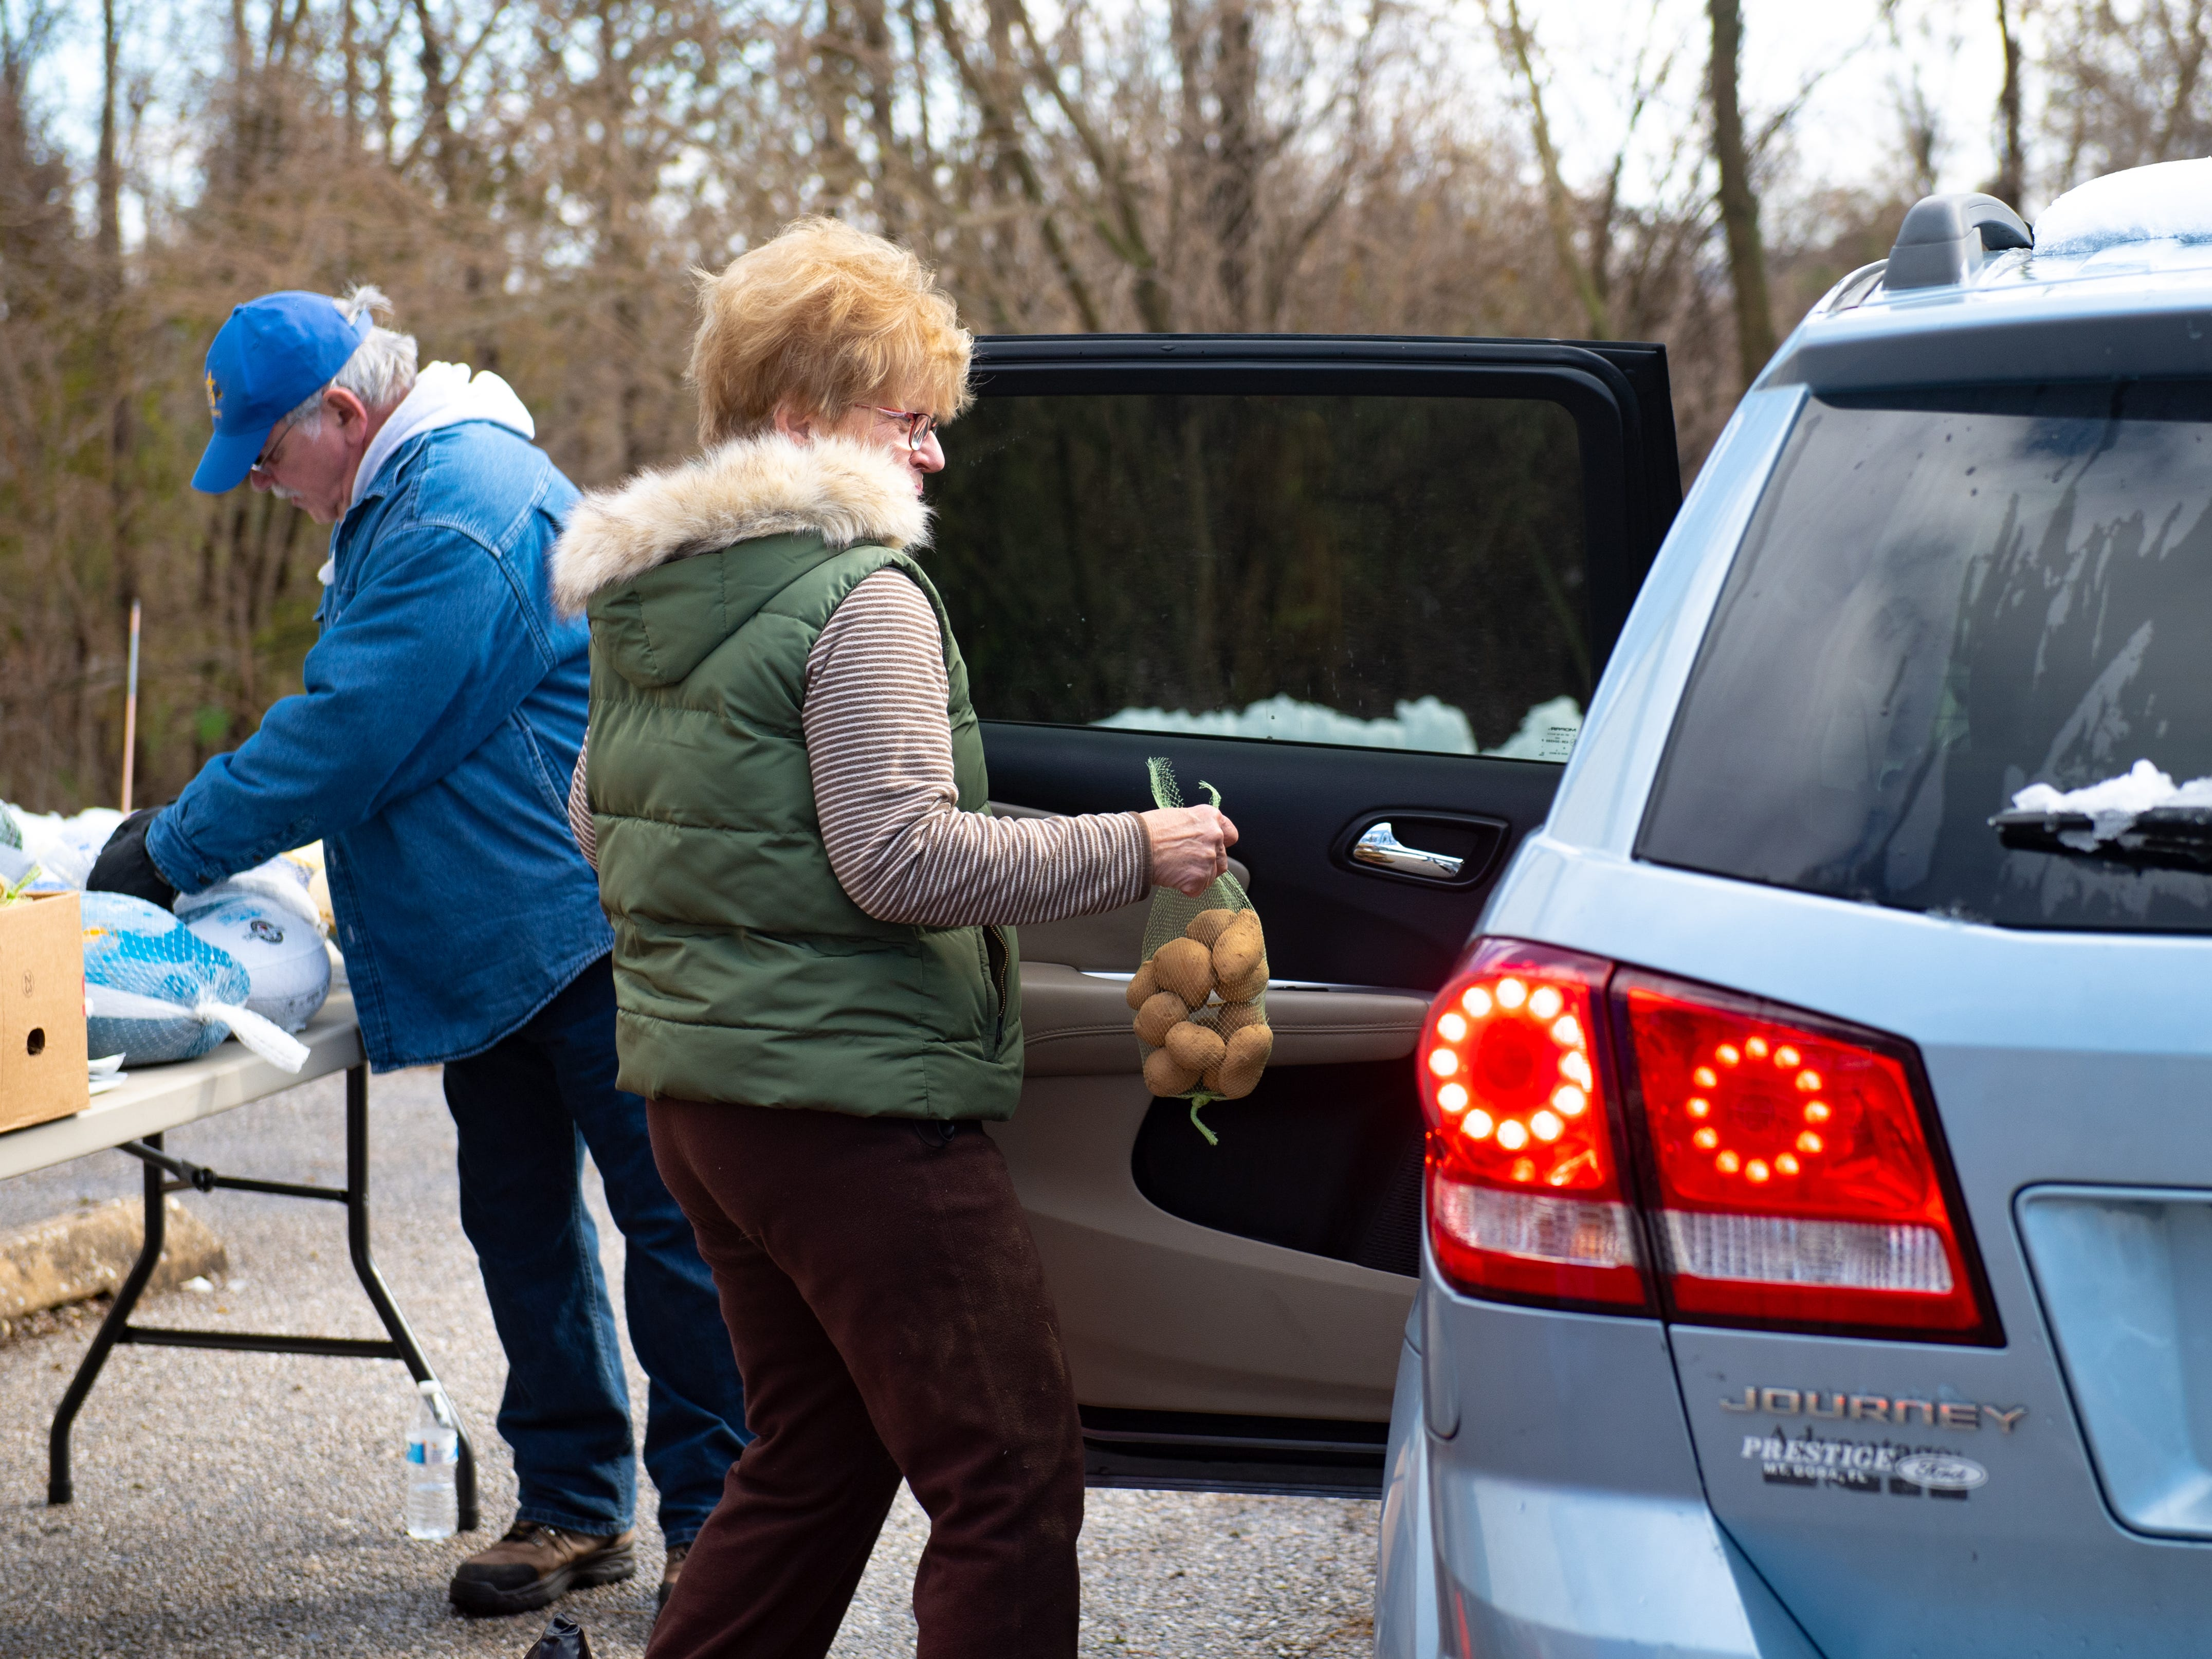 When guests pull around the back of the building, volunteers load their cars with food. Sandy Neff puts the potatoes in the back seat of the van during the Thanksgiving food giveaway provided by New Hope Ministries, November 16, 2018.